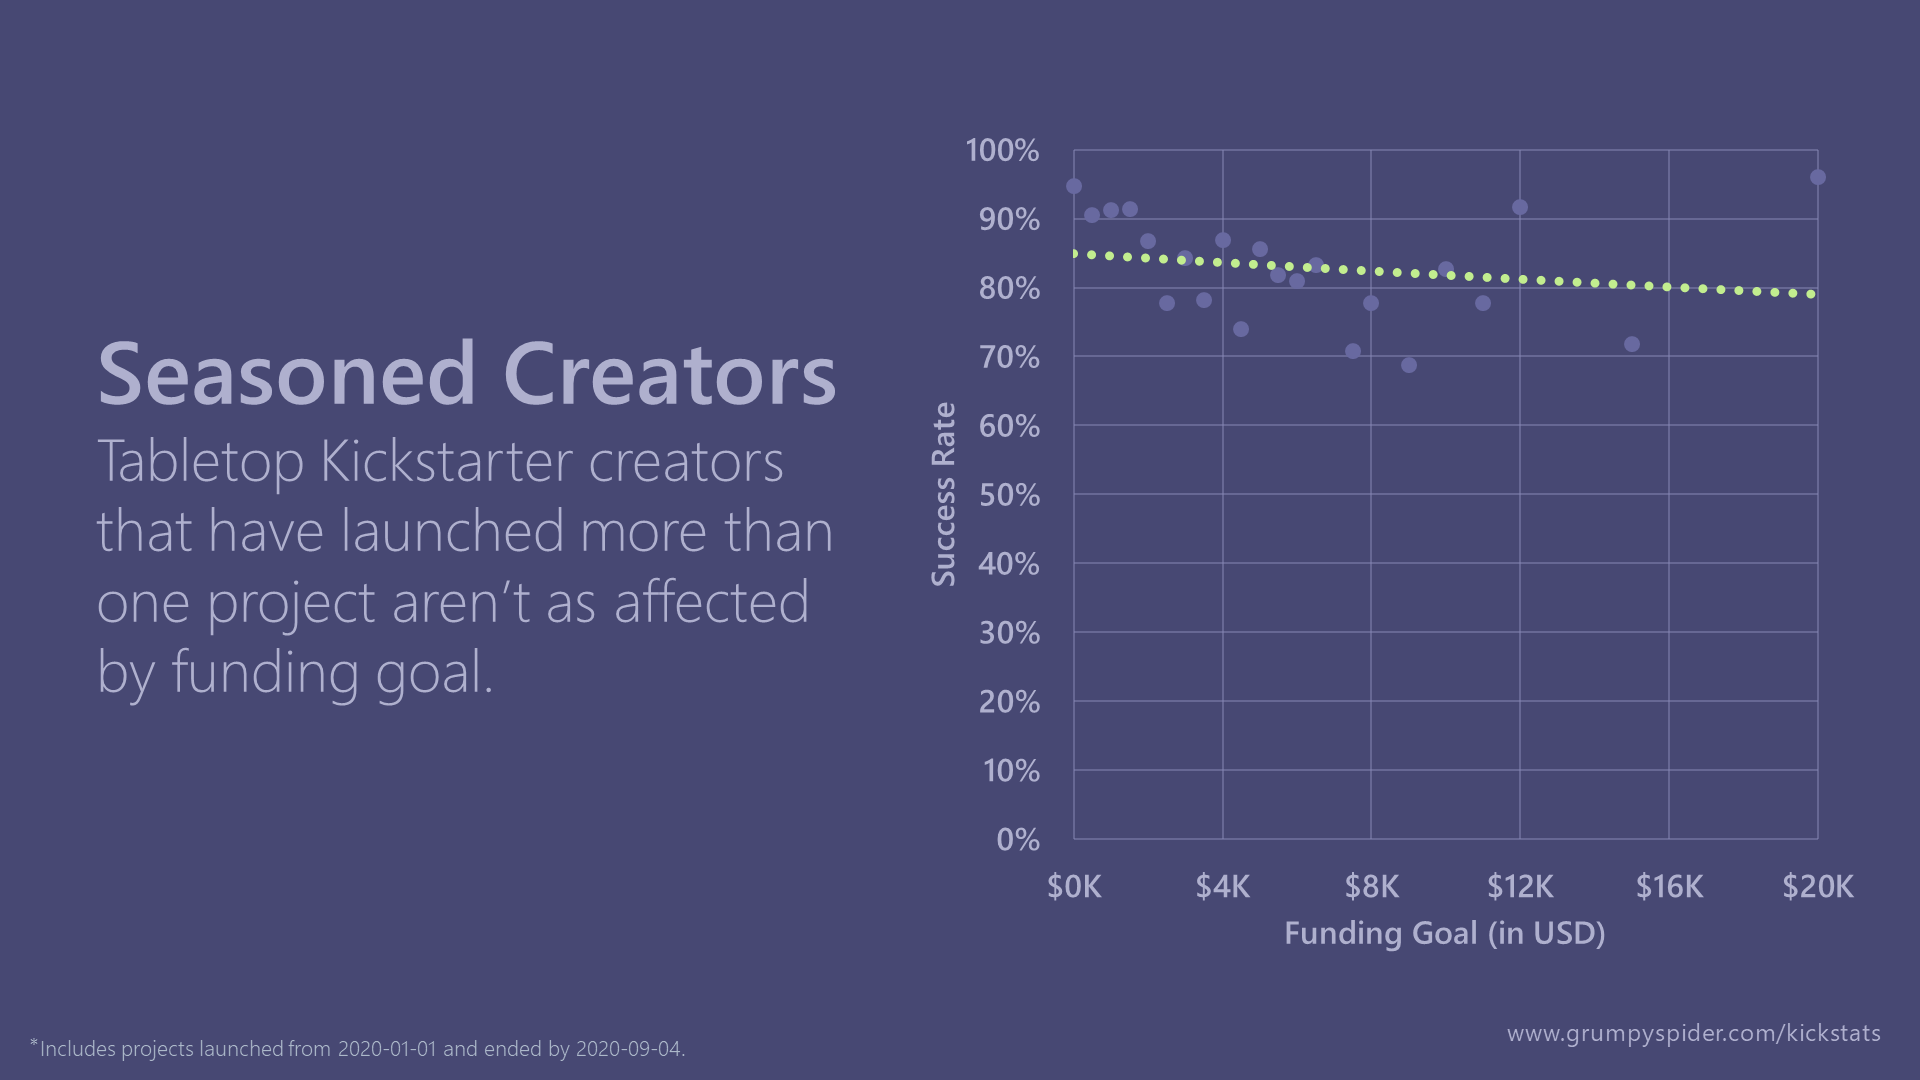 Kickstarter success rates by funding goal for non-first-time Tabletop creators